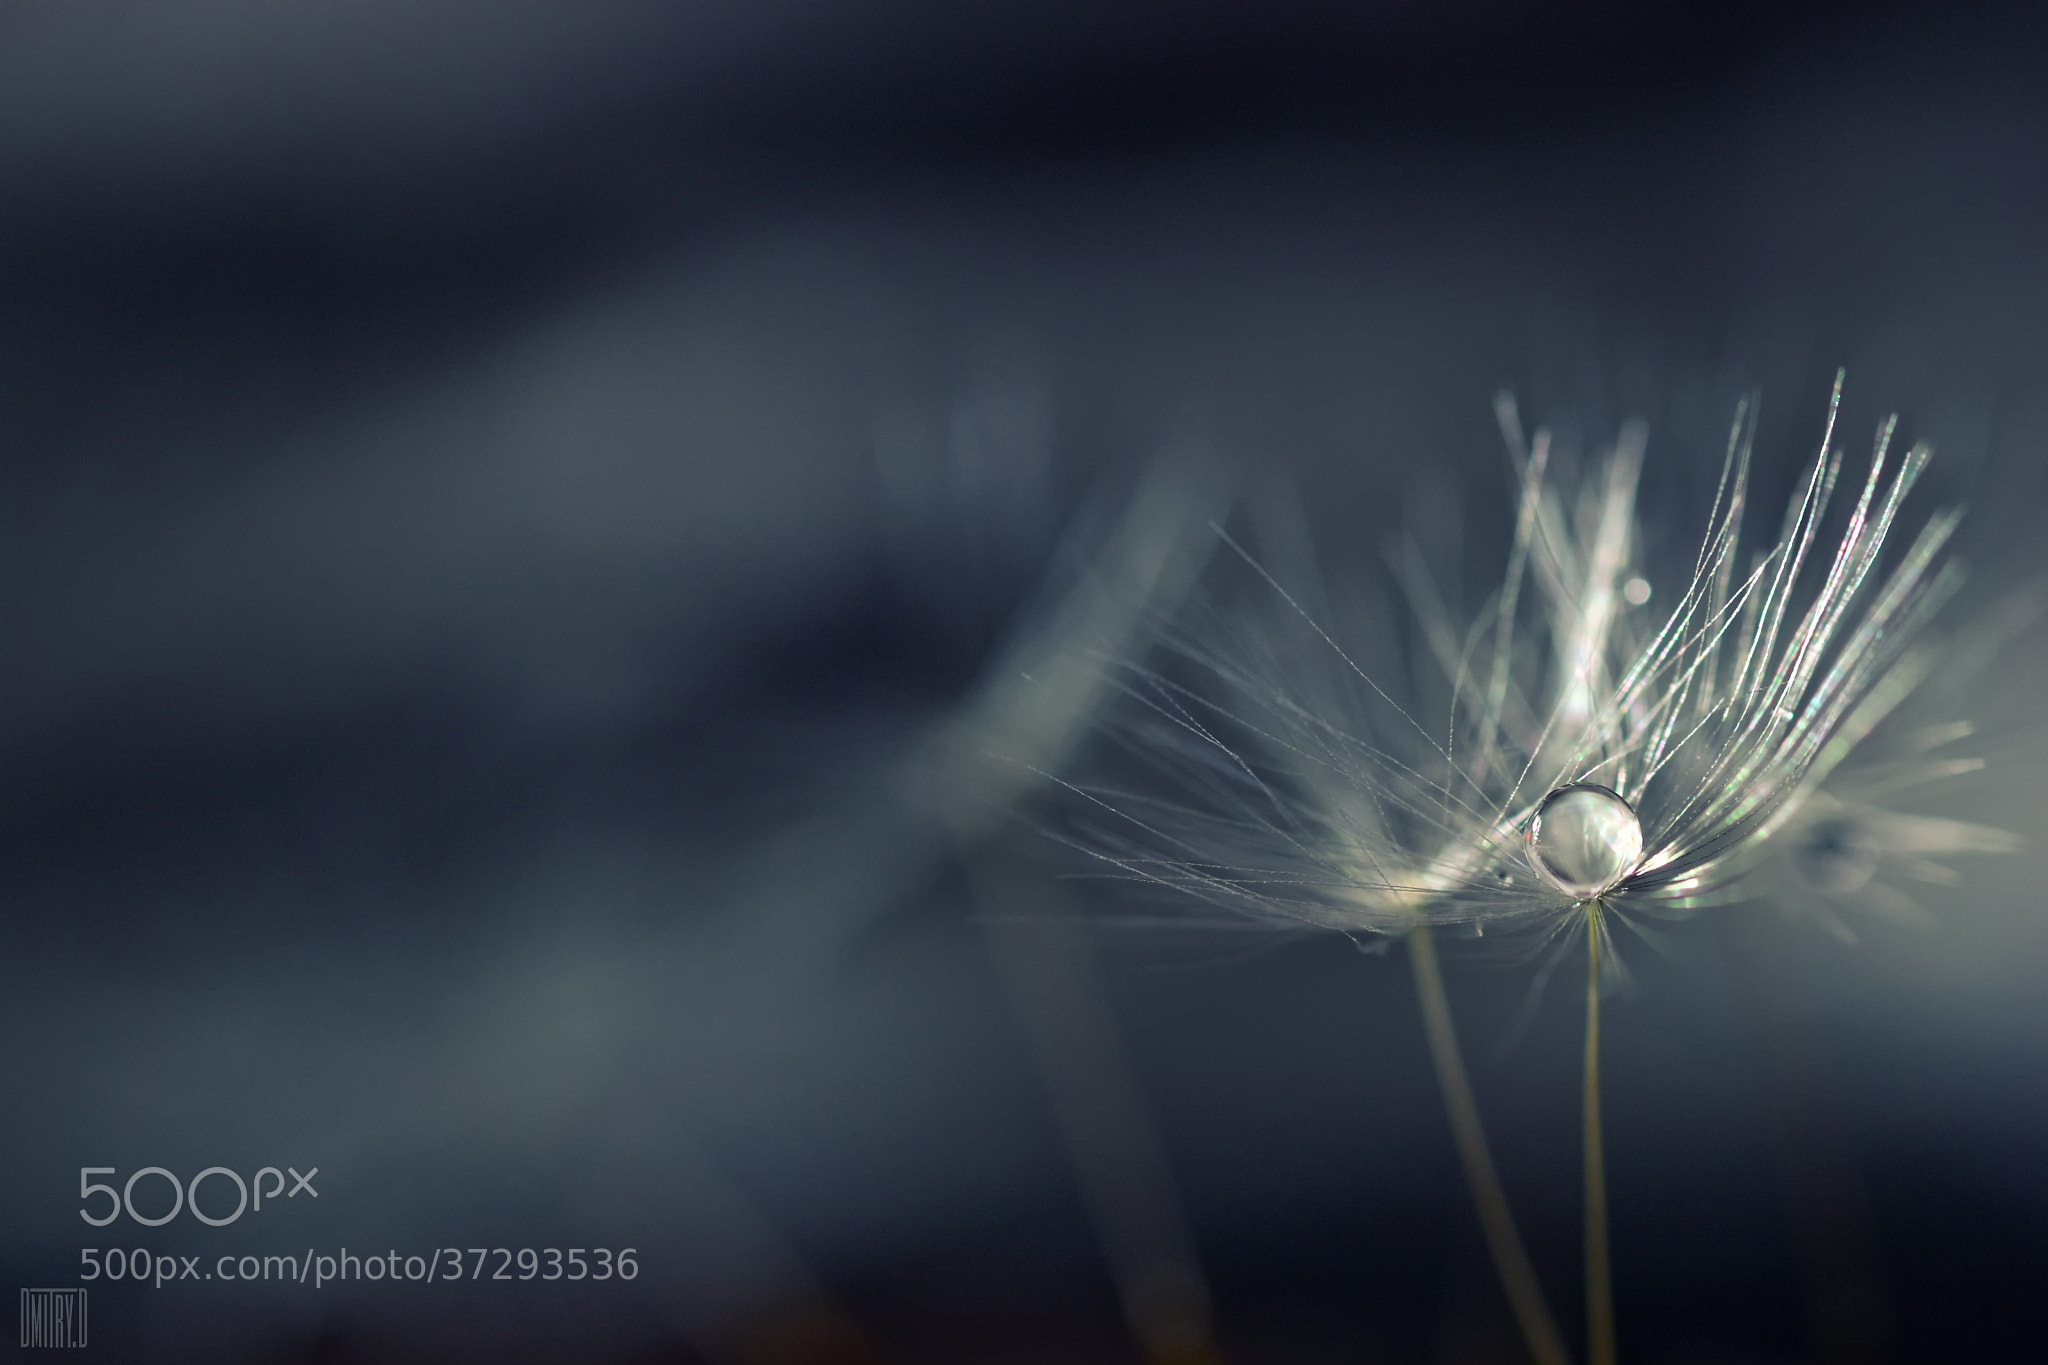 Photograph Stories of drops 6 by Dmitry Doronin on 500px